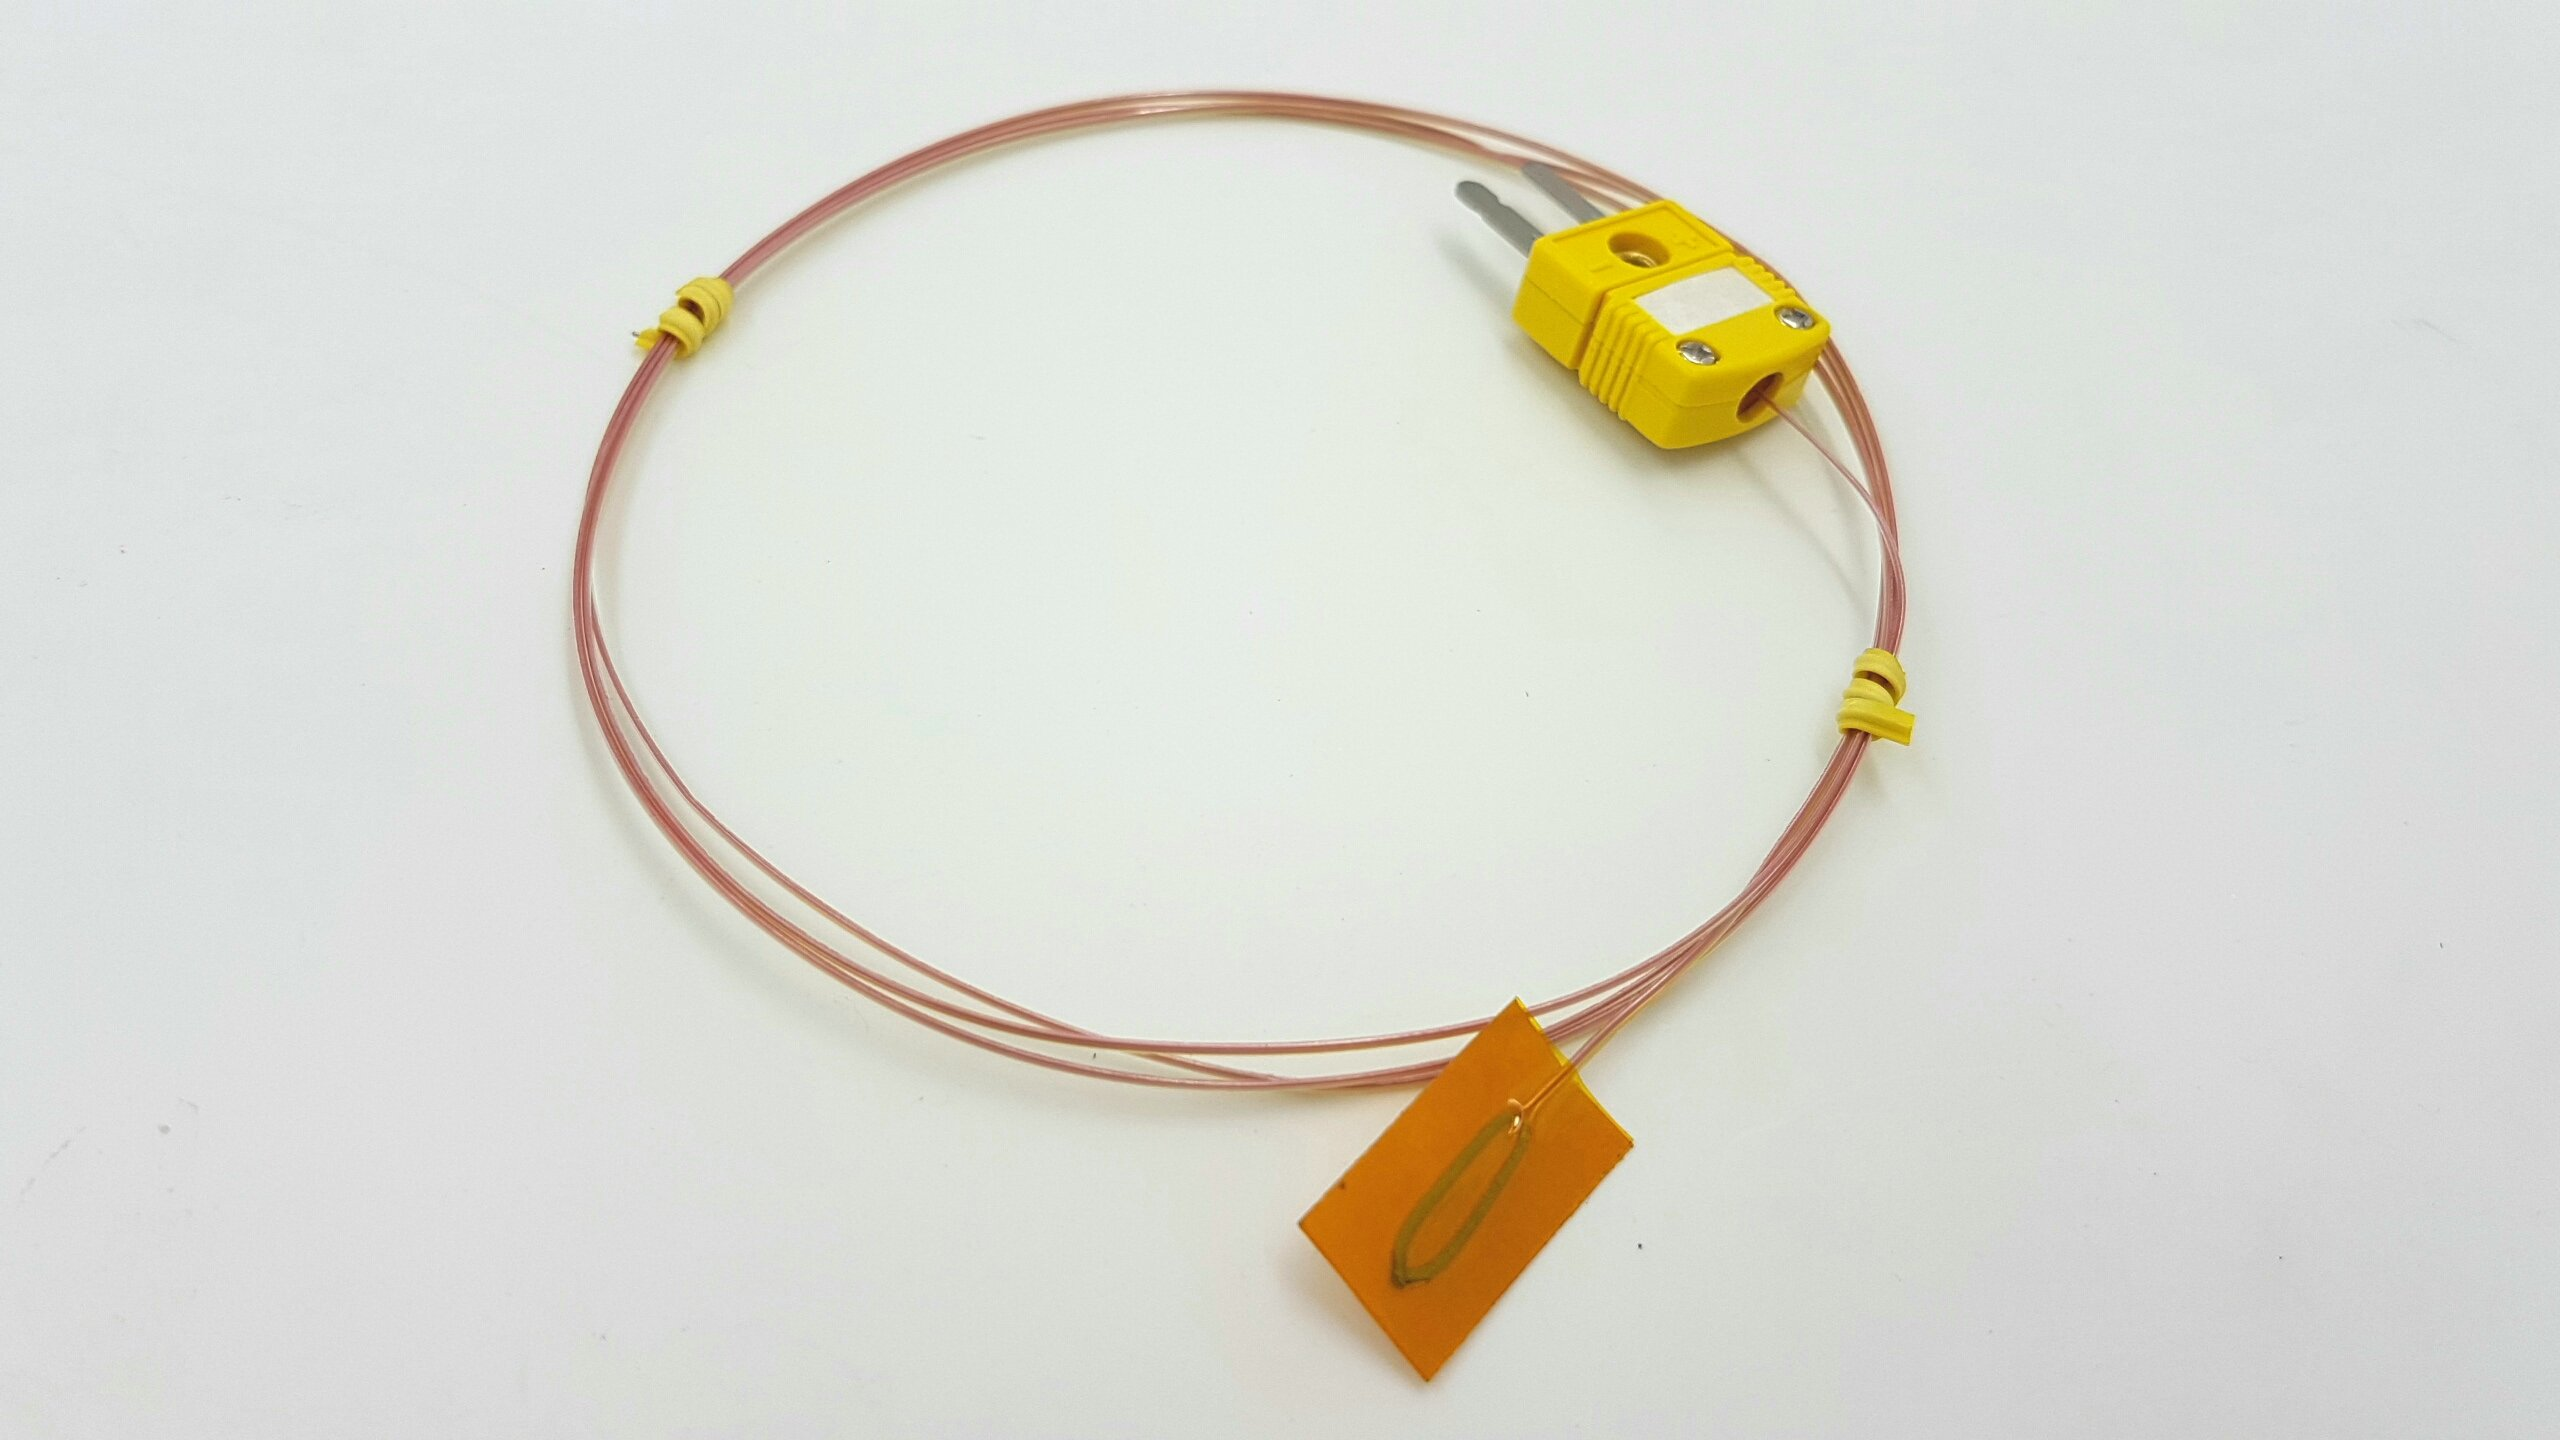 Perfect-Prime TL0225, Surface Contact,0.25 mm diameter, K-Type Sensor Probe with Sticker for K-Type Thermocouple Thermoemter/Meter, Temperature Range up to 200 °C/ 392°F